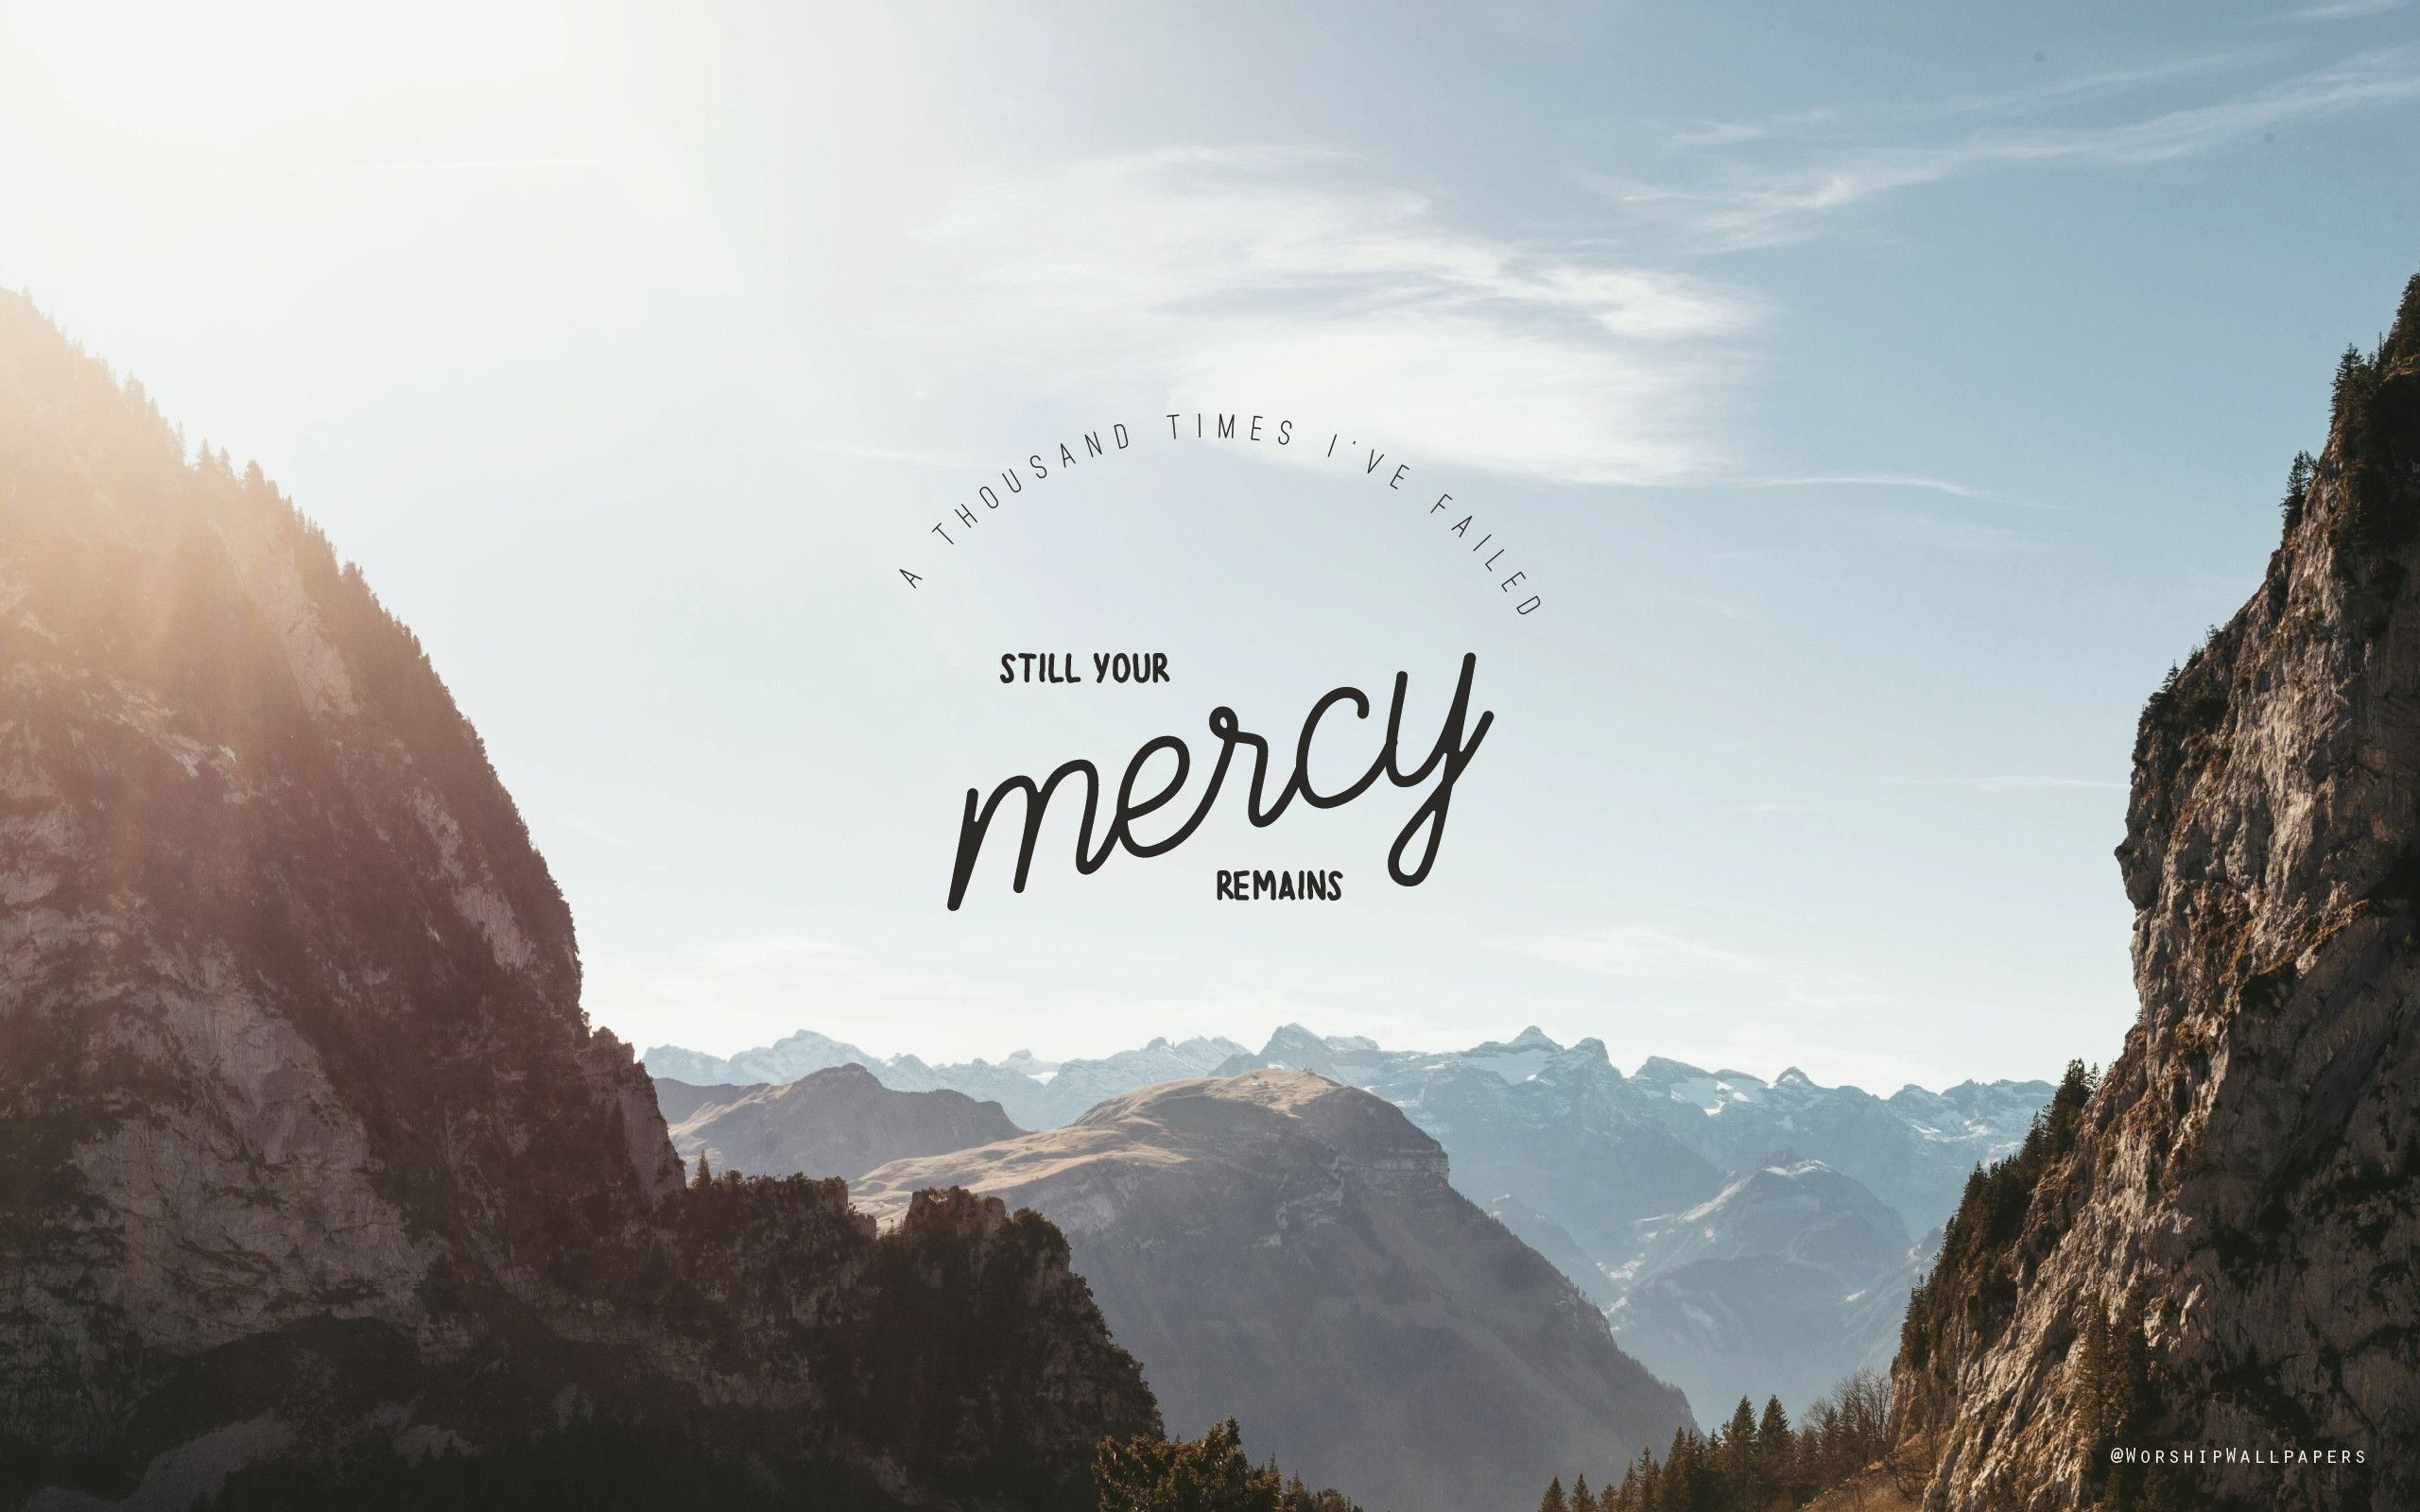 Still Your Mercy Remains Wallpaper Background Laptop Wallpaper Quotes Laptop Wallpaper Desktop Wallpapers Laptop Wallpaper